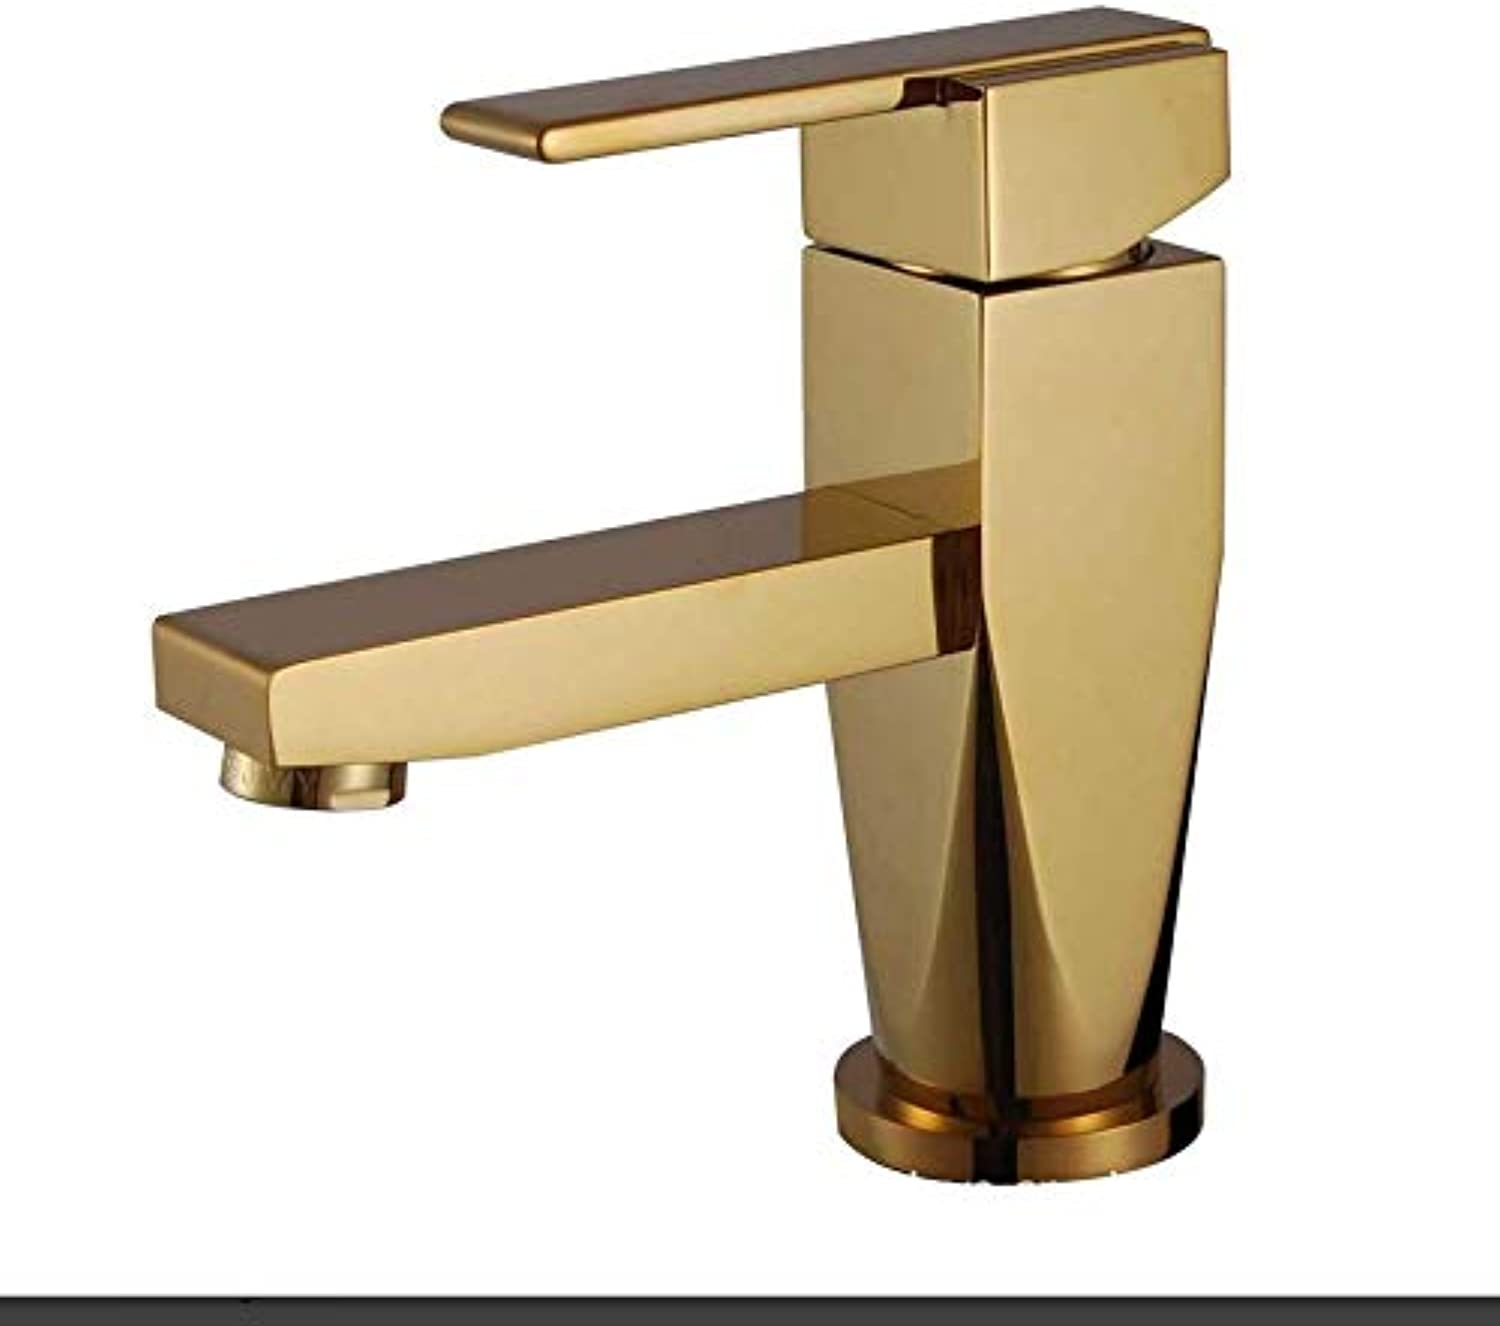 Modern Double Basin Sink Hot and Cold Water Faucetfaucet Copper-Plated Hot and Cold Water Basin Faucet Bathroom Cabinet Faucet